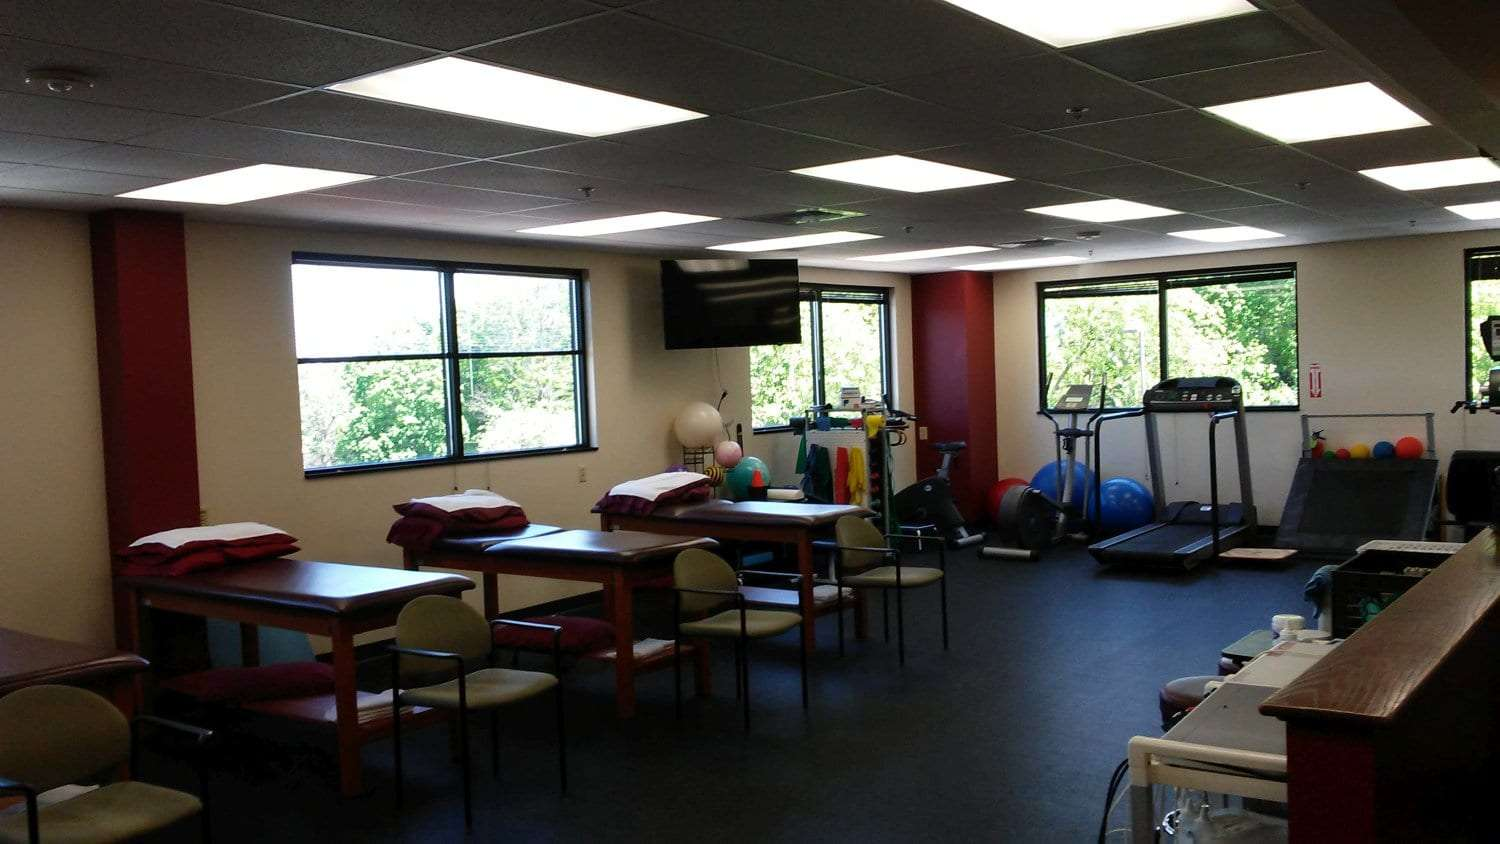 Here is a photo of various equipment used for physical therapy at our clinic in Newton, New Jersey.